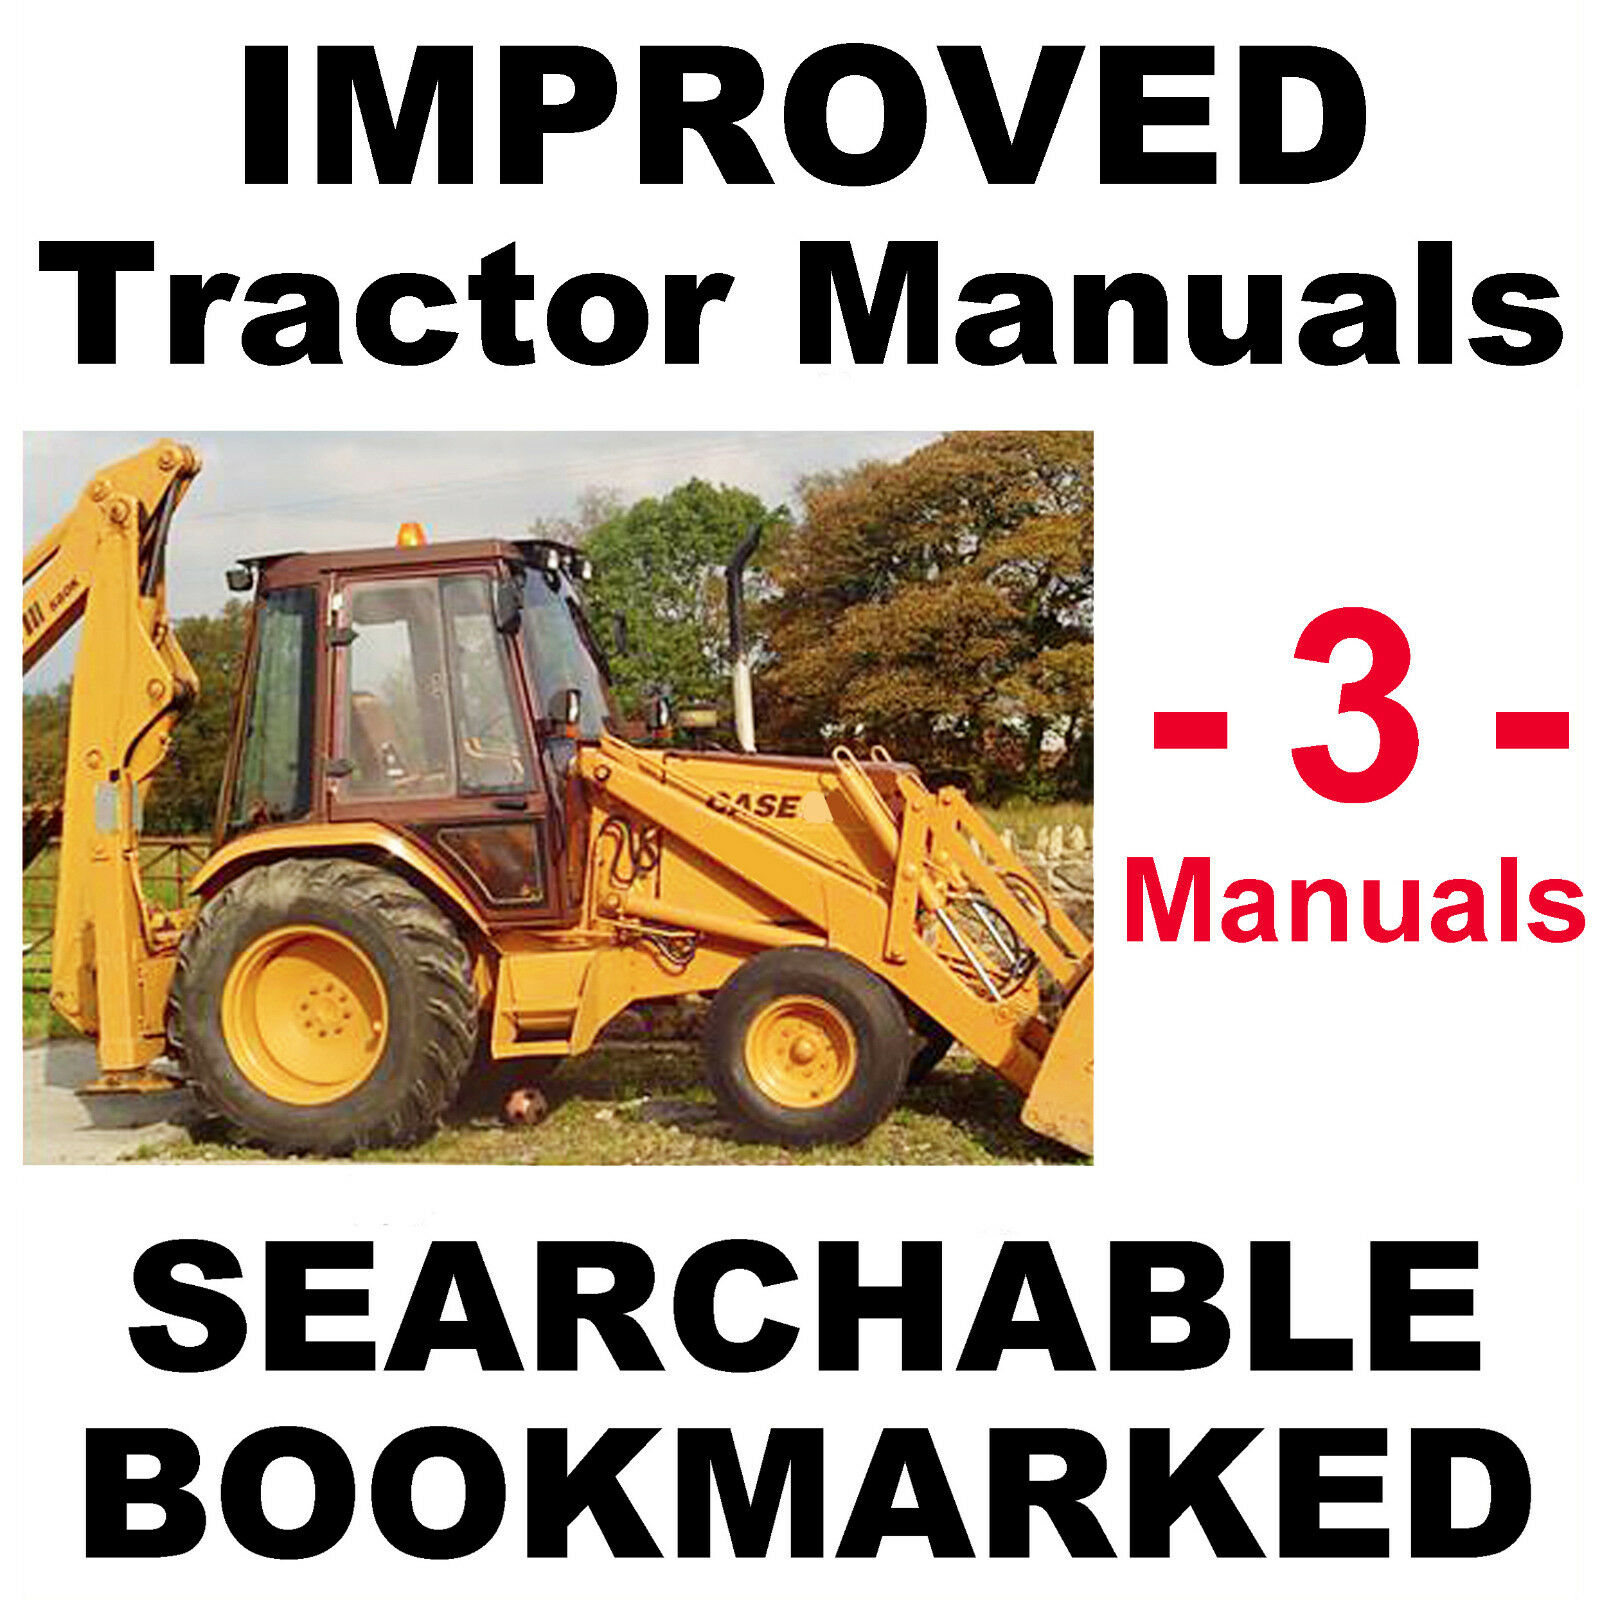 Case 580 Super K 580SK Tractor Backhoe Loader SERVICE & PARTS MANUAL -3-  MANUALS 1 of 11FREE Shipping Case 580 Super K 580SK Tractor ...